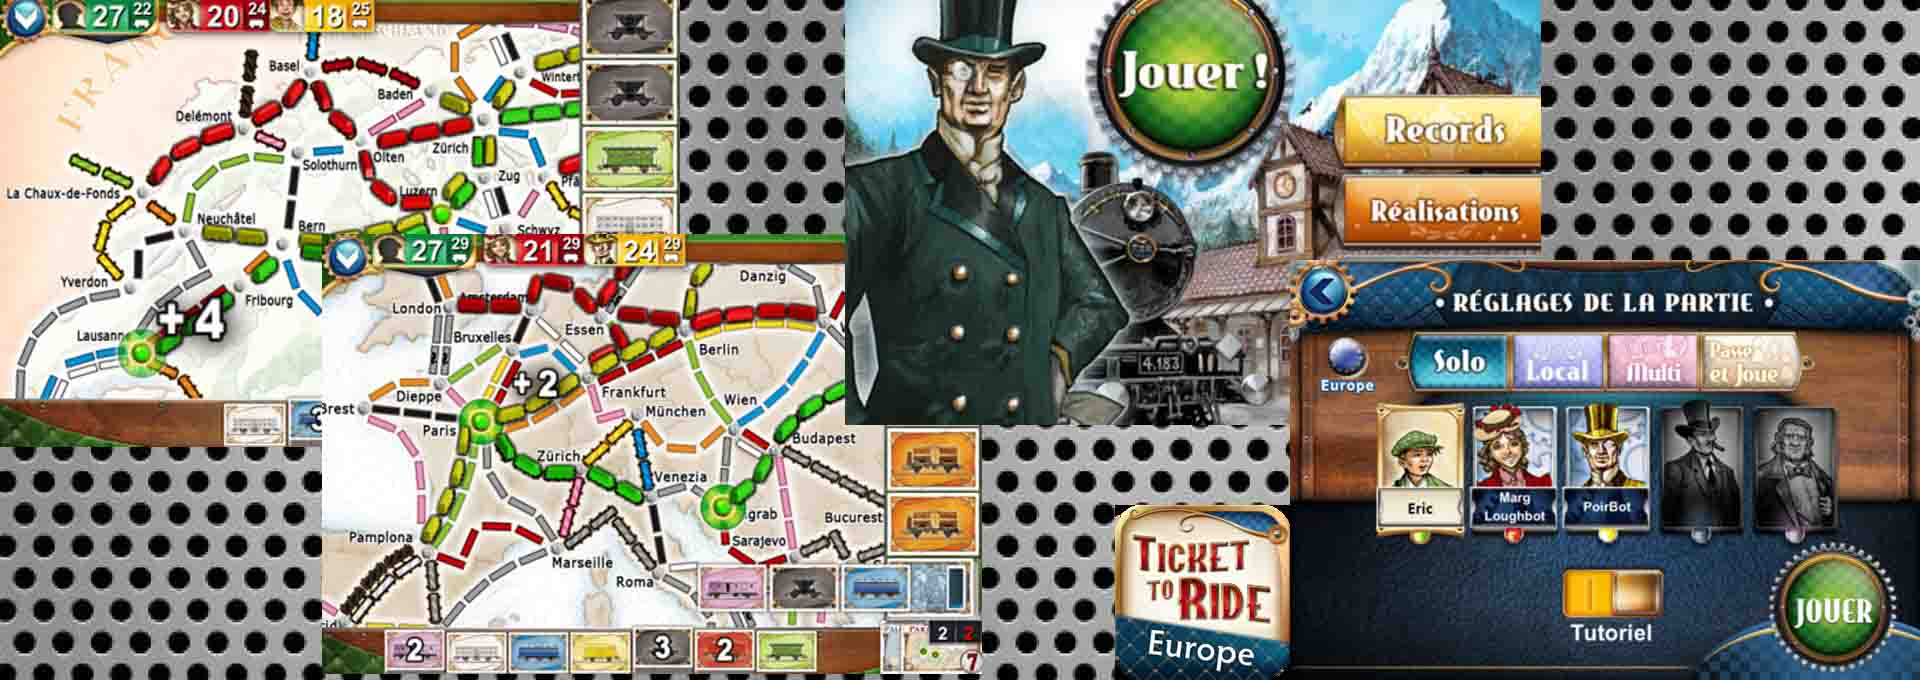 Ticket to Ride Pocket (Les aventuriers du rail), le test